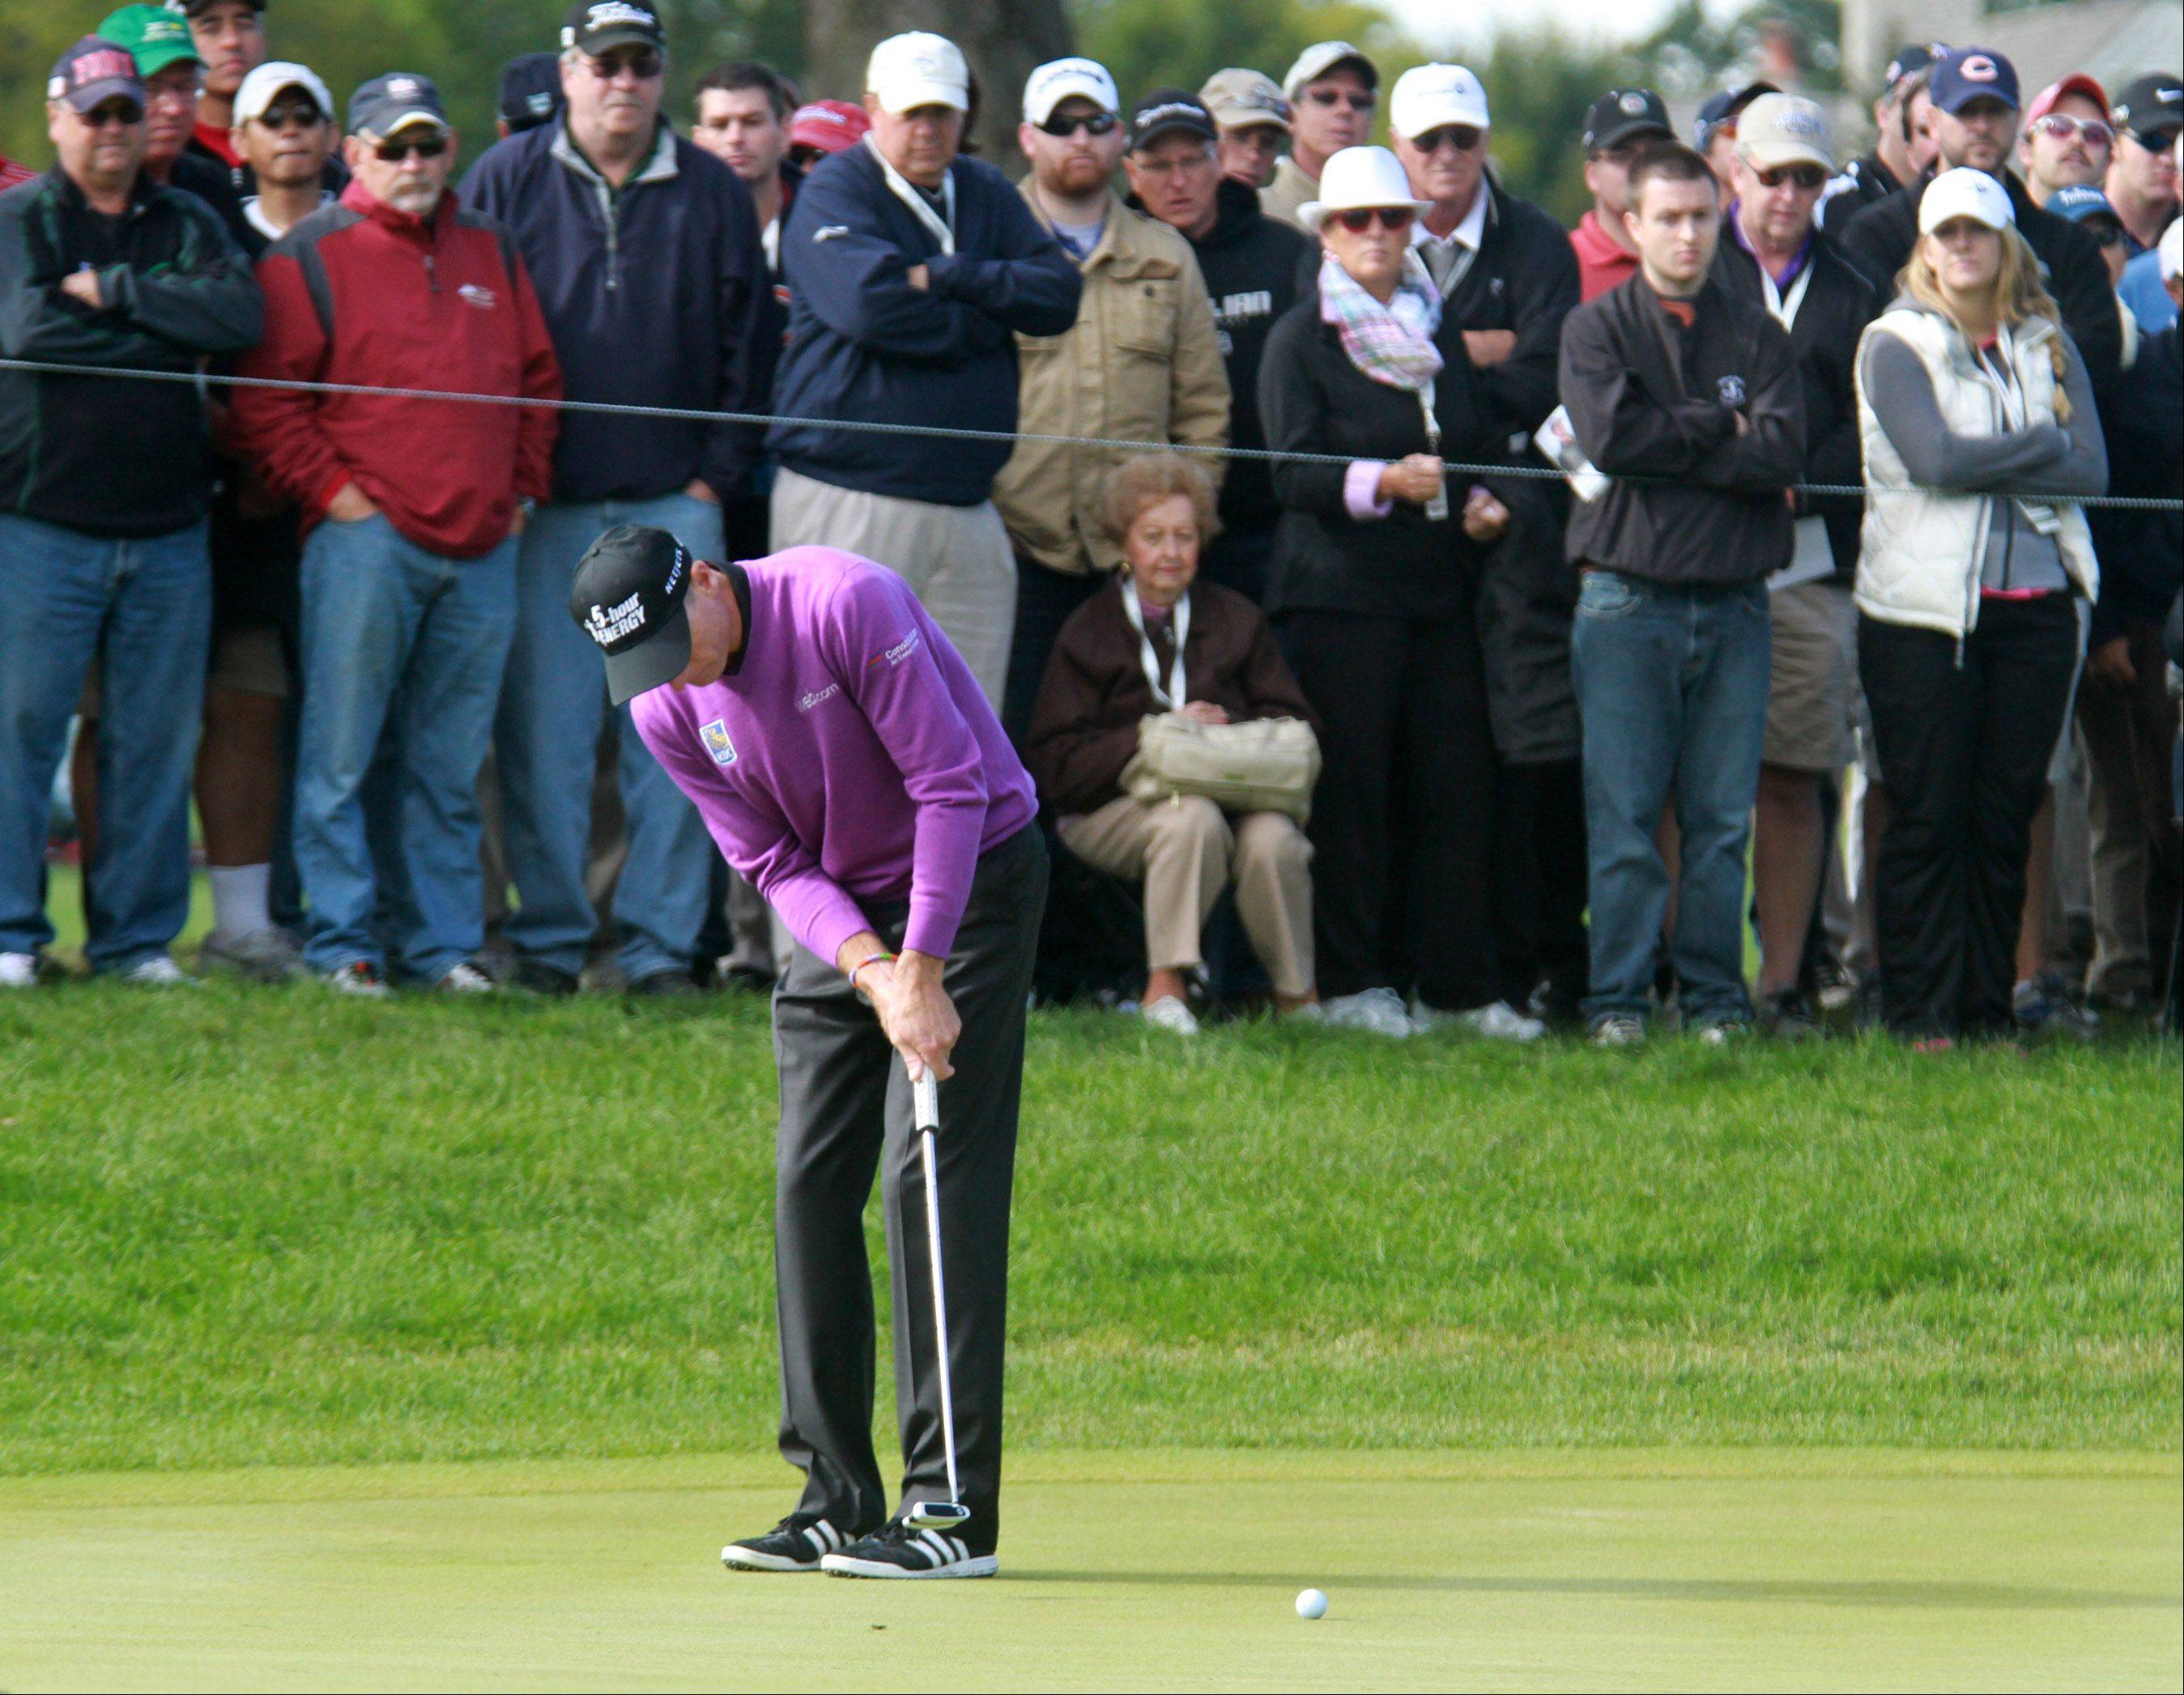 Jim Furyk putts on the 2nd hole.